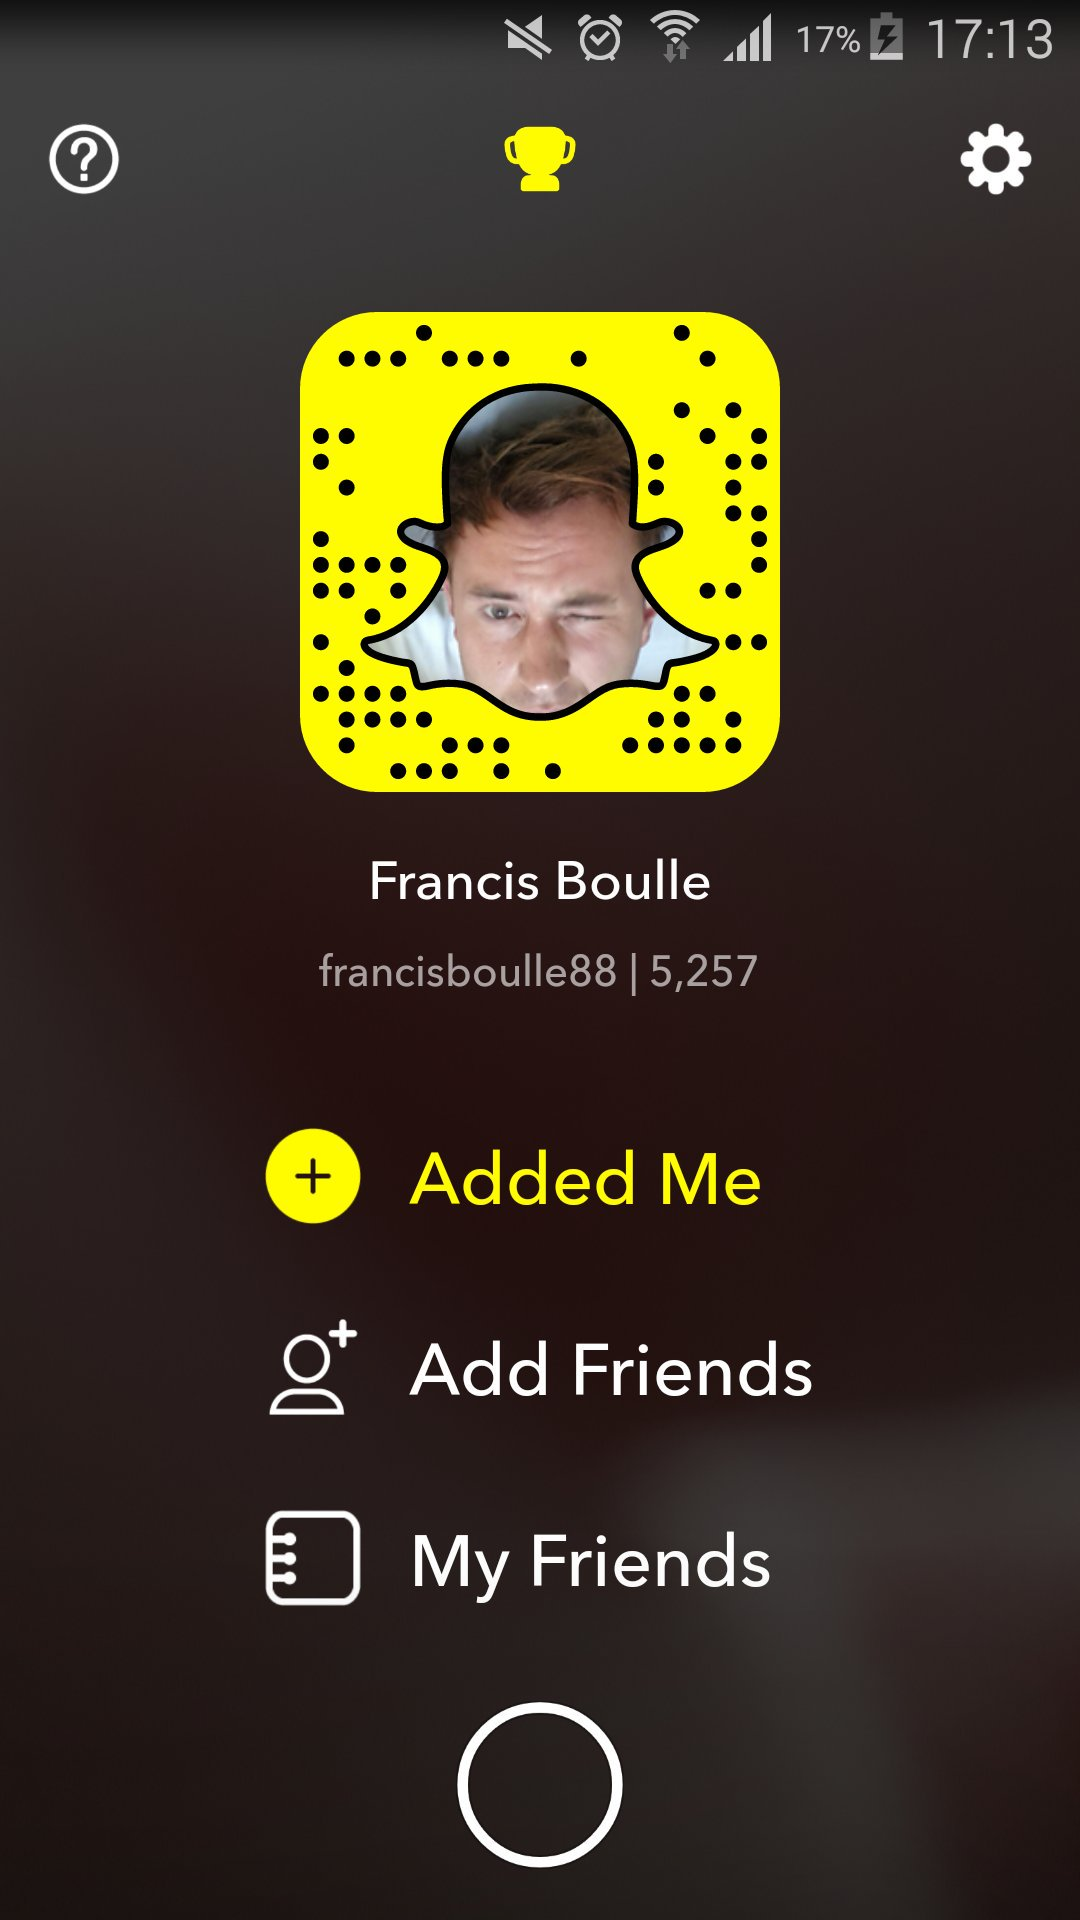 Did you guys know I'm now on schnappschat now? Add me francisboulle88 before it's too late!! https://t.co/OcHNQXPqbA